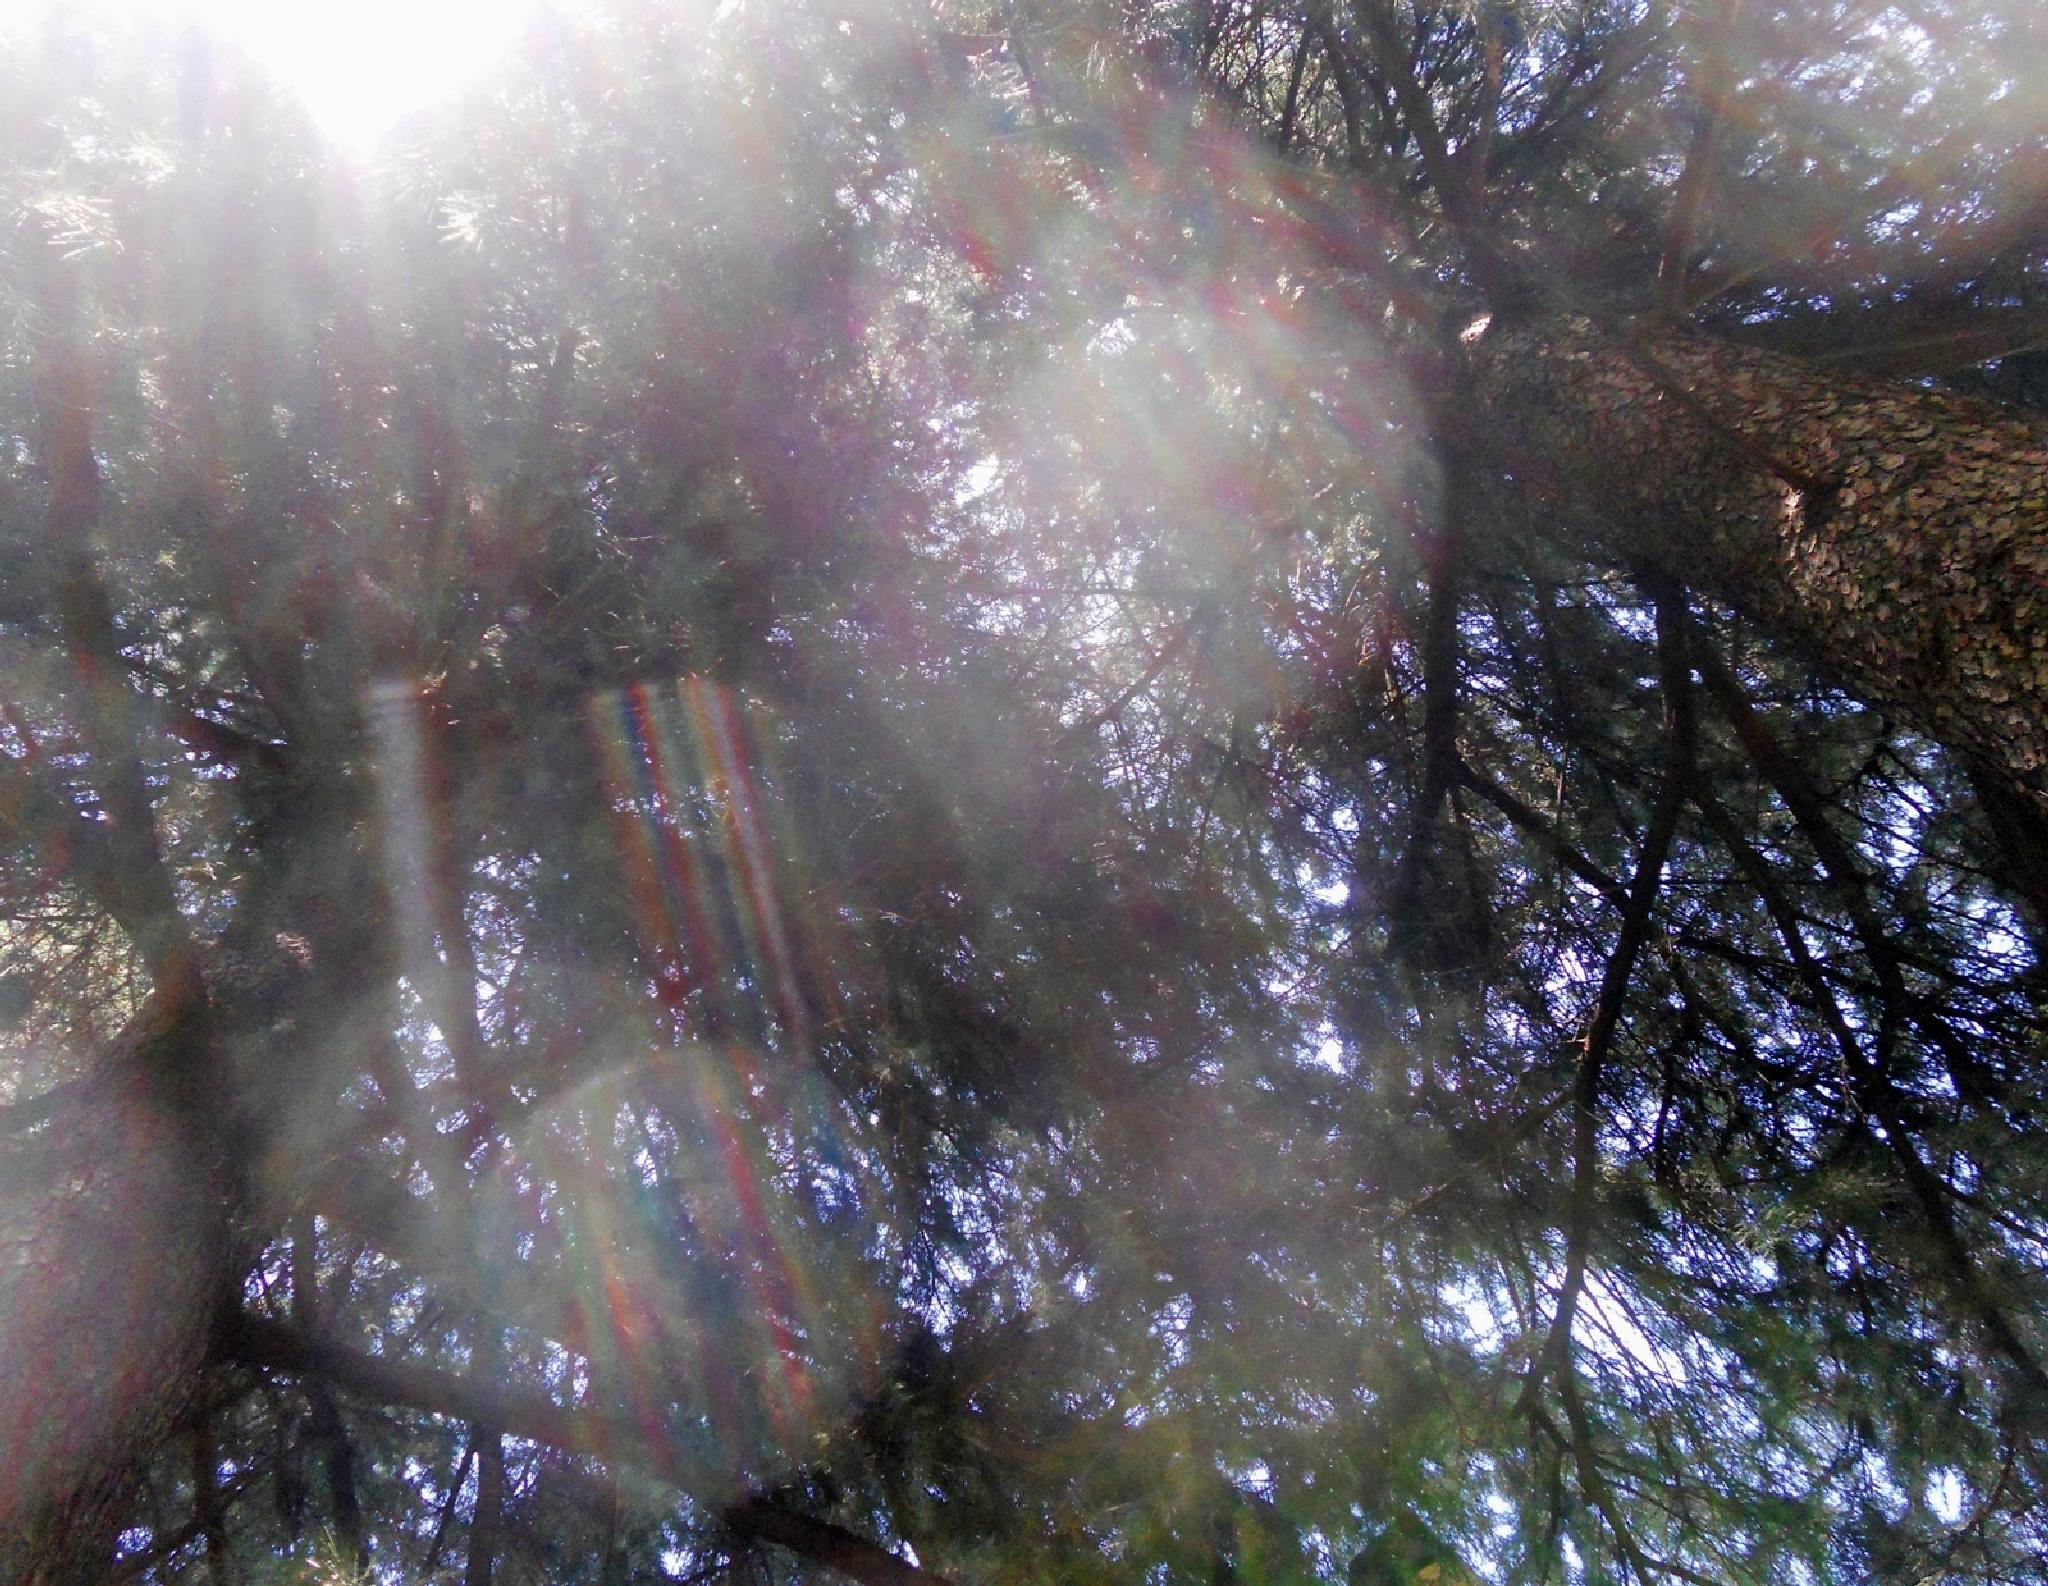 The sun through the branches by marilenavaccarini